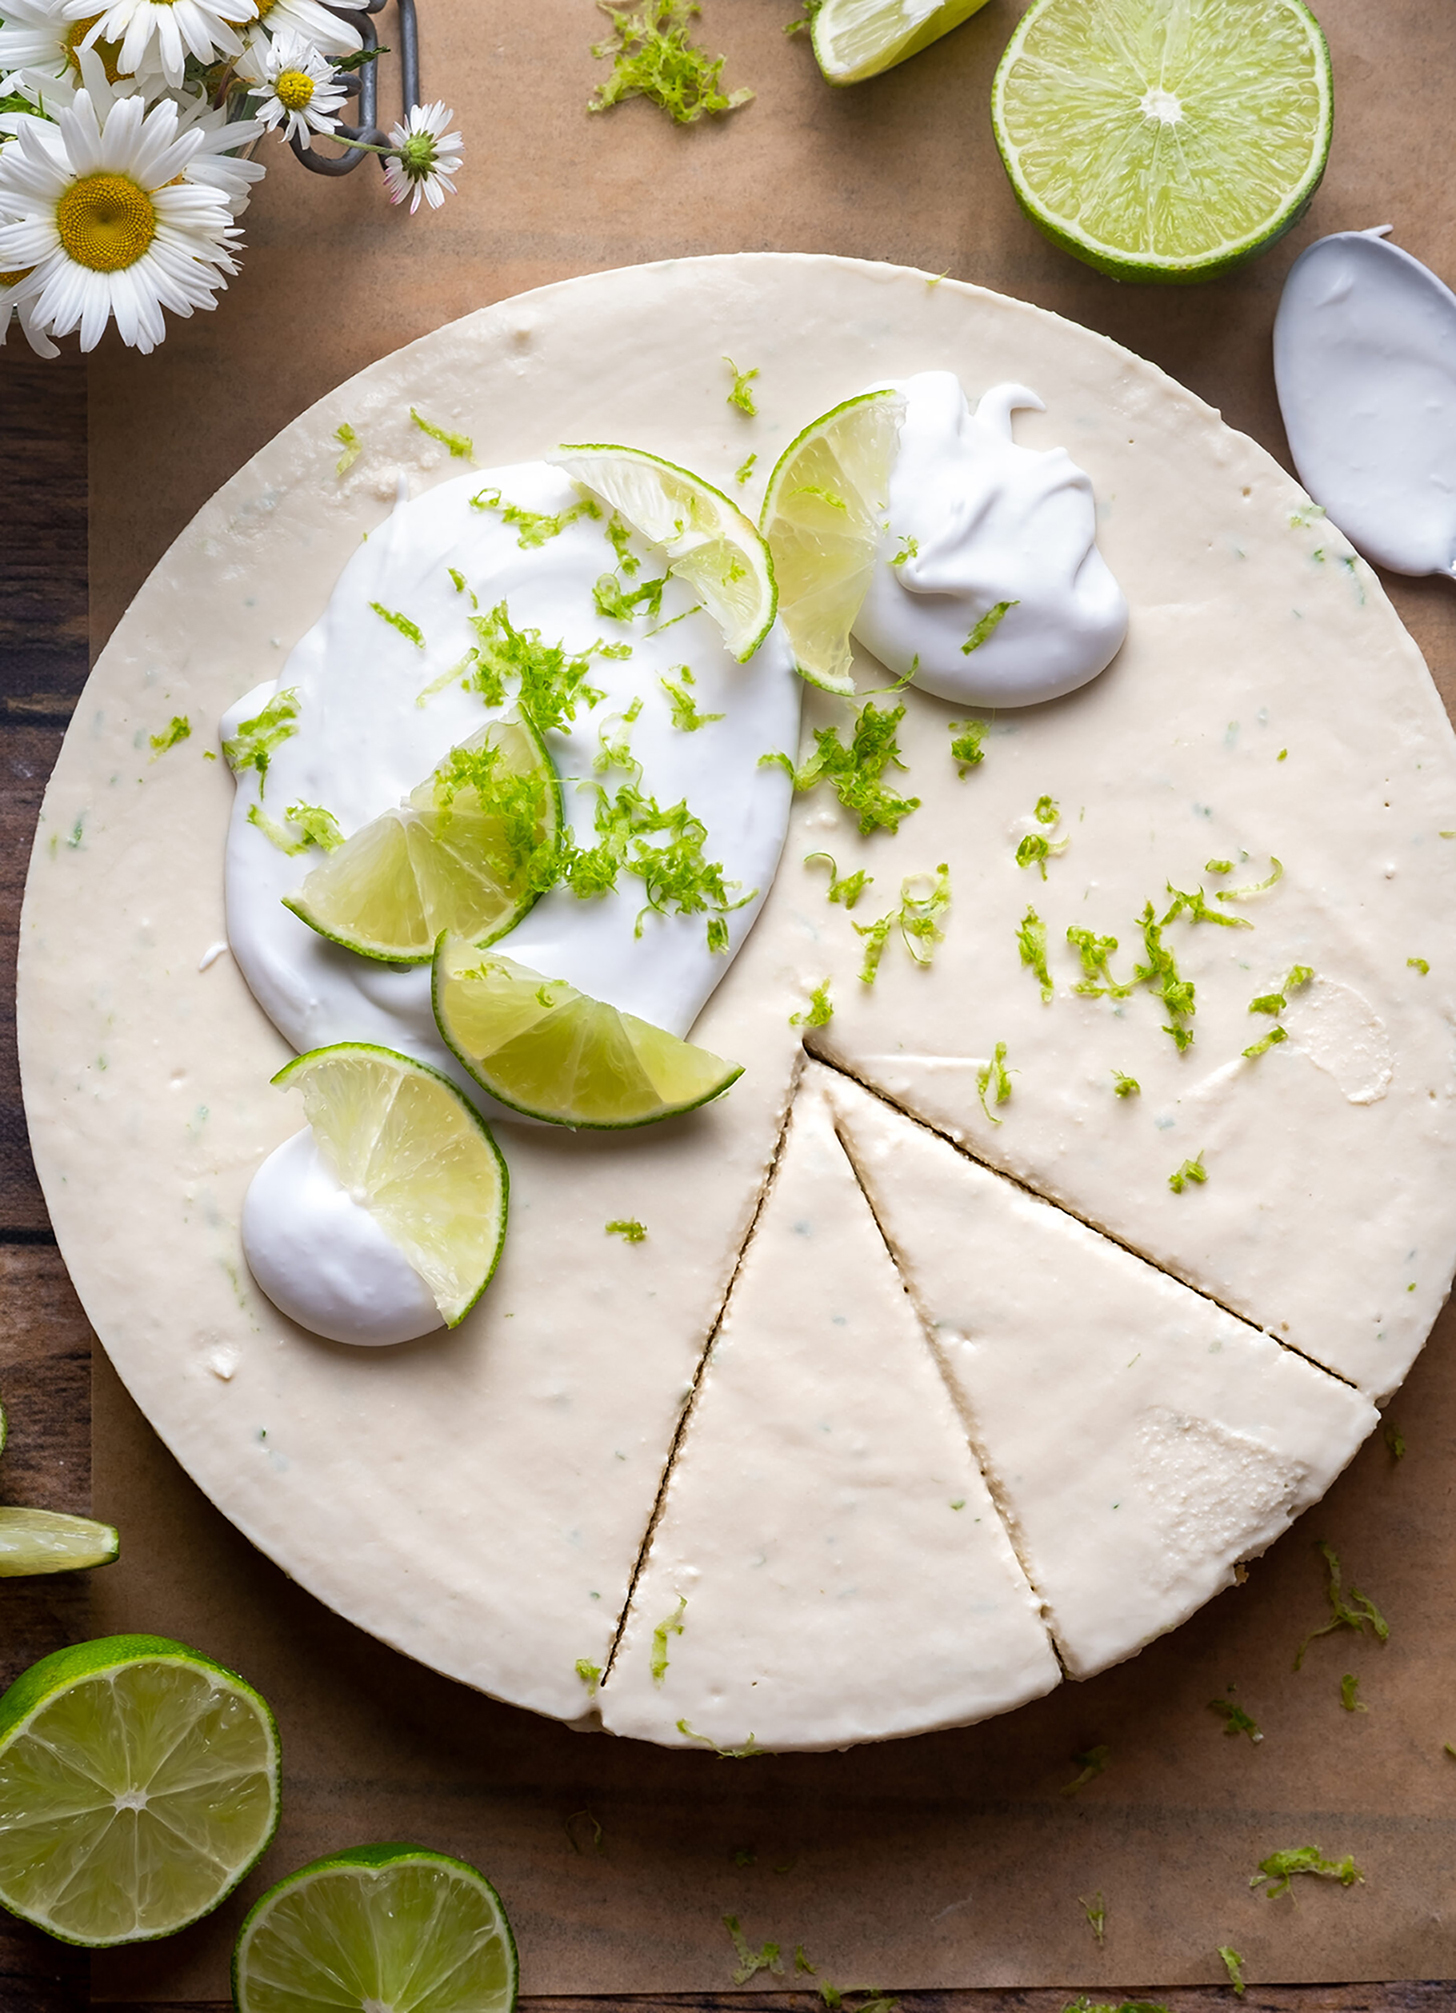 Healthy Key Lime Pie cut into slices with whipped cream on top.